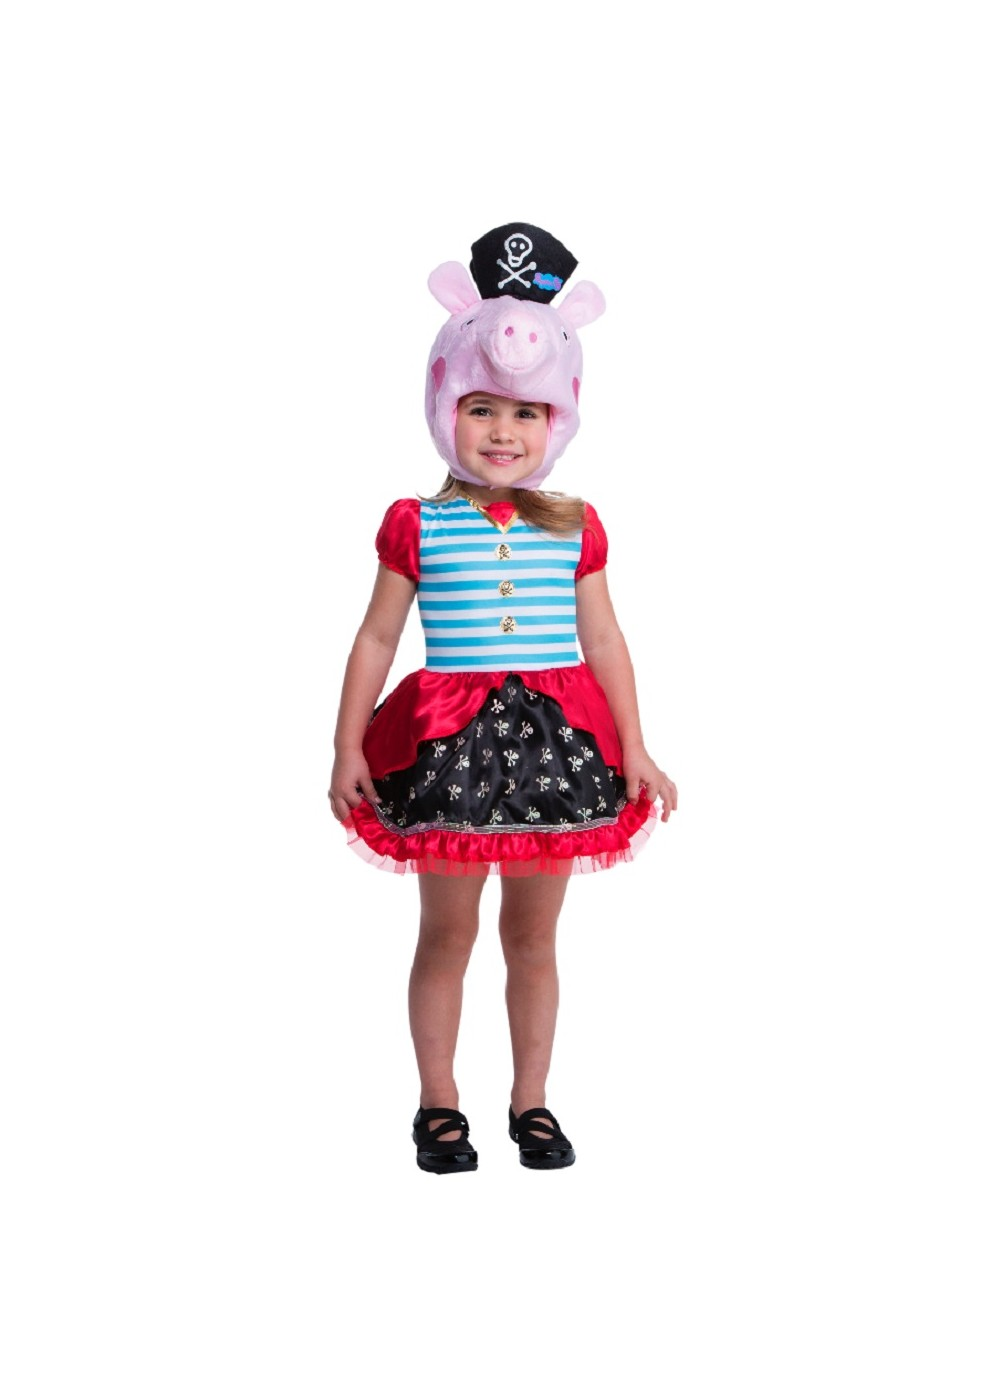 Toddler Girls Peppa Pig Pirate Costume  sc 1 st  Wonder Costumes & Peppa Pig Pirate Girls Costume - TV Show Costumes